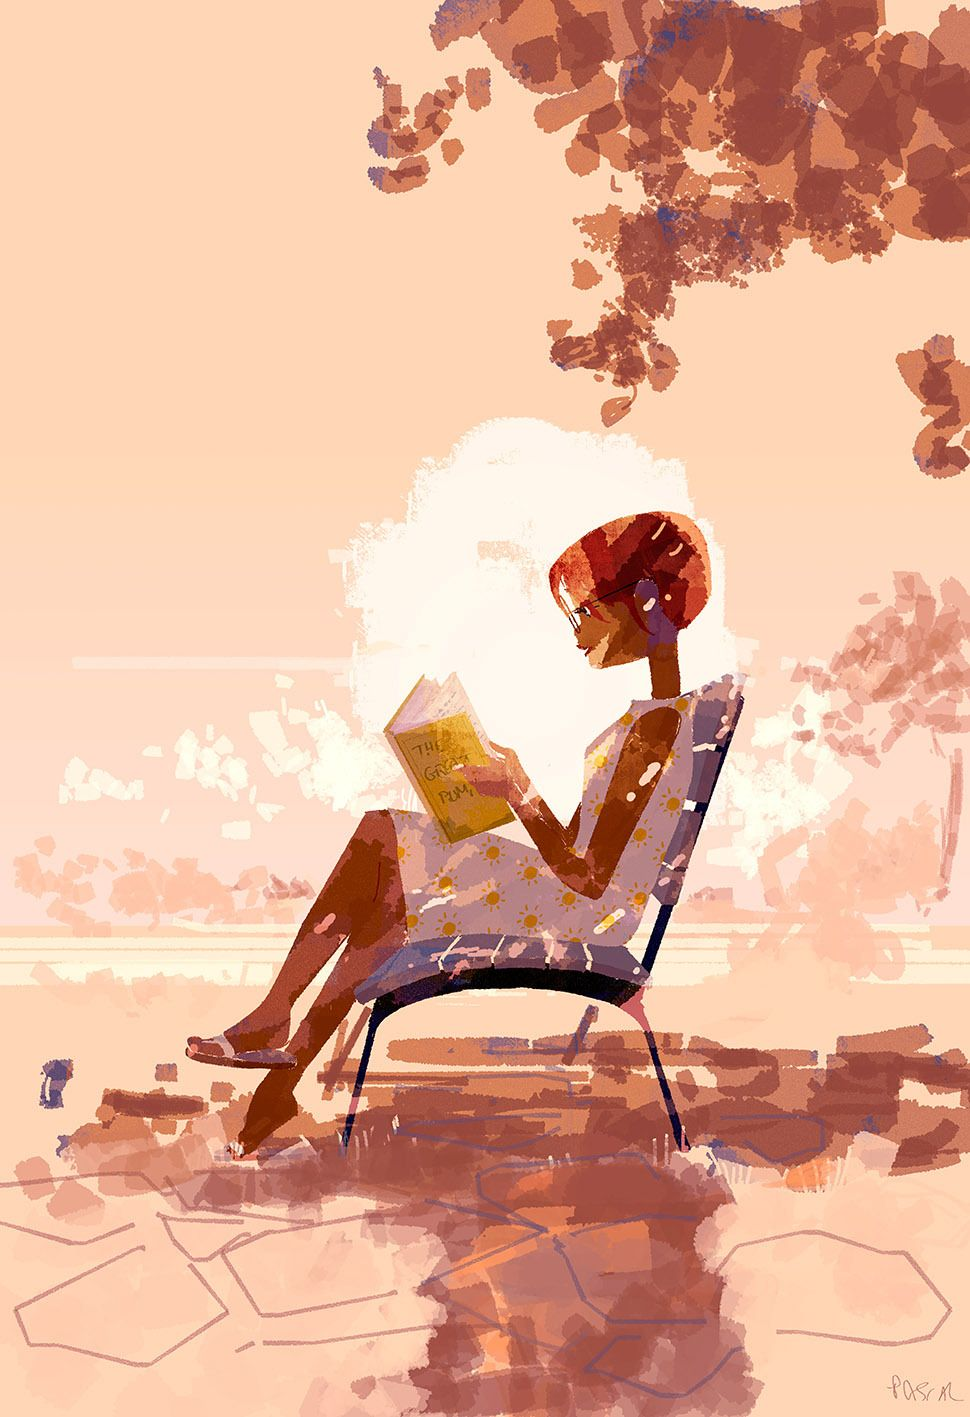 Cool off sketch at the end of a busy day! #pascalcampion